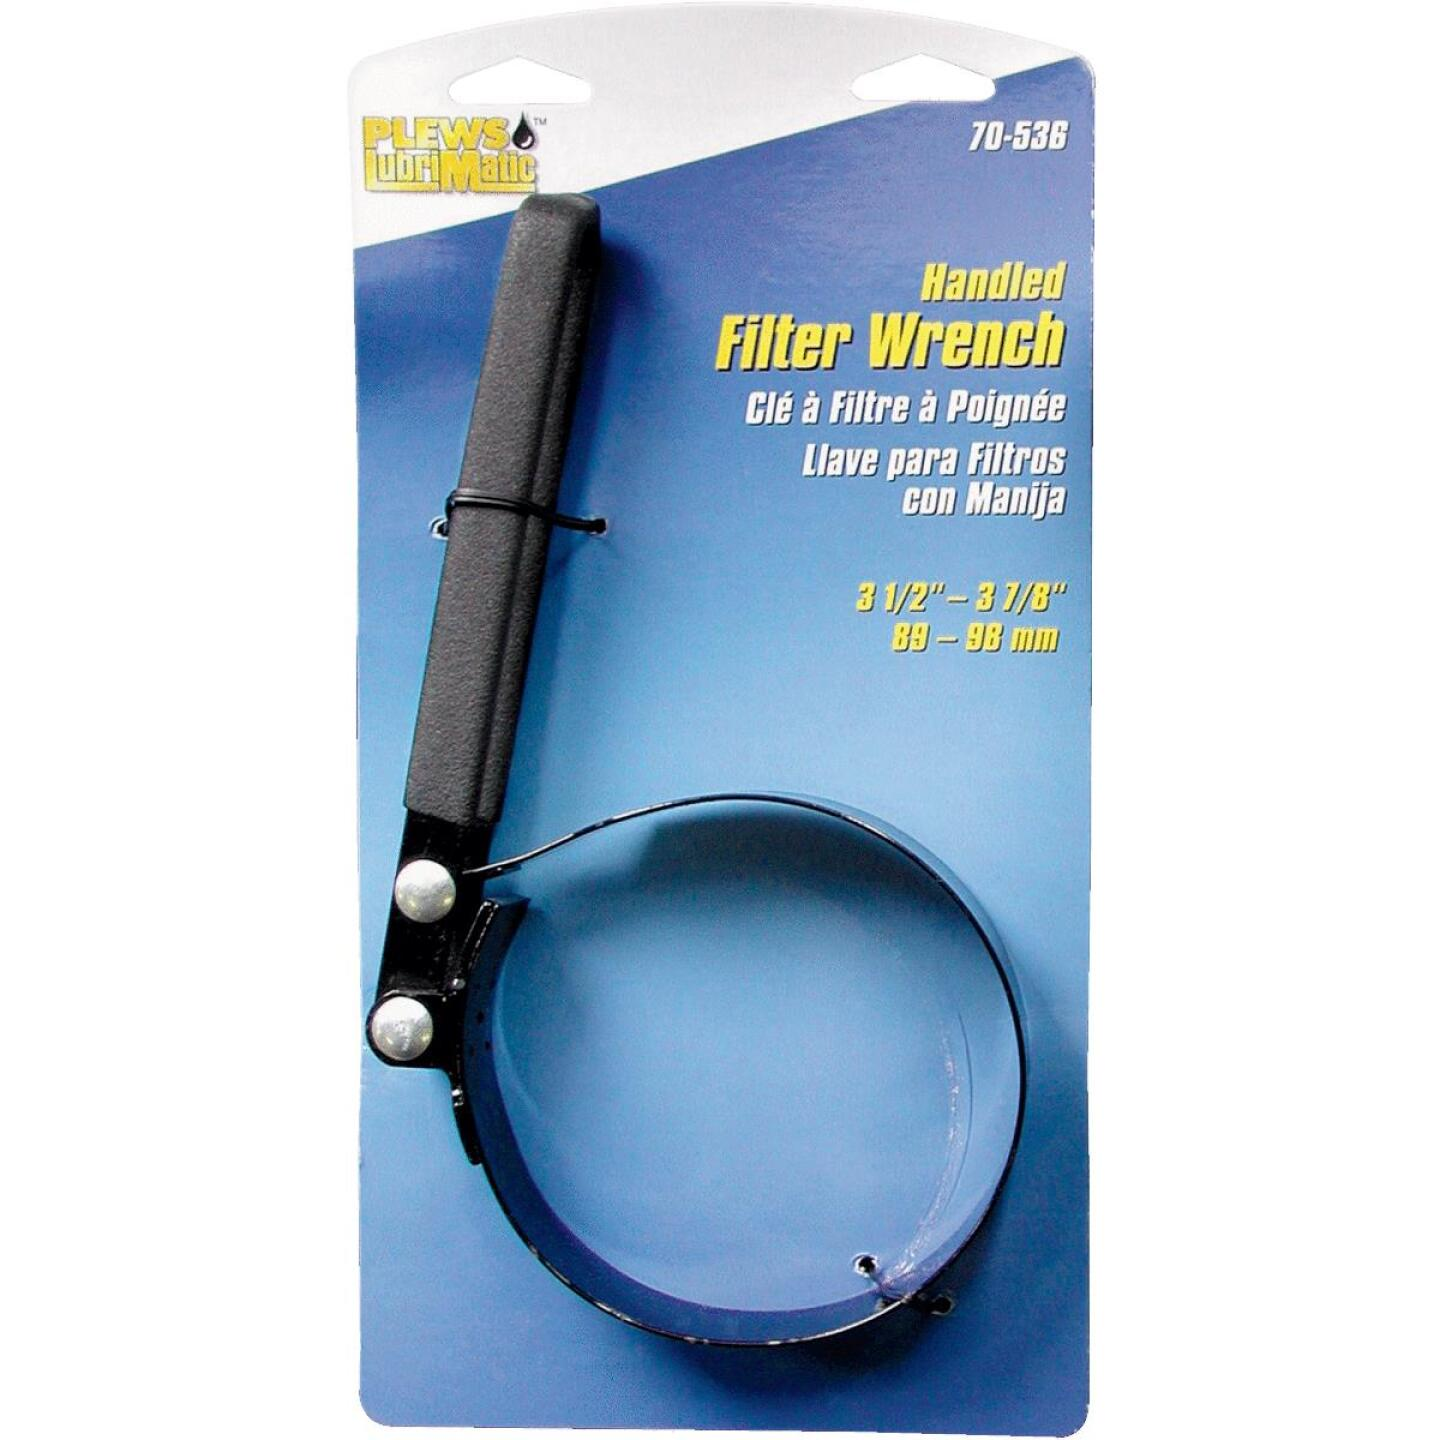 Plews Lubrimatic Steel Vinyl Coated Oil Filter Wrench Image 2